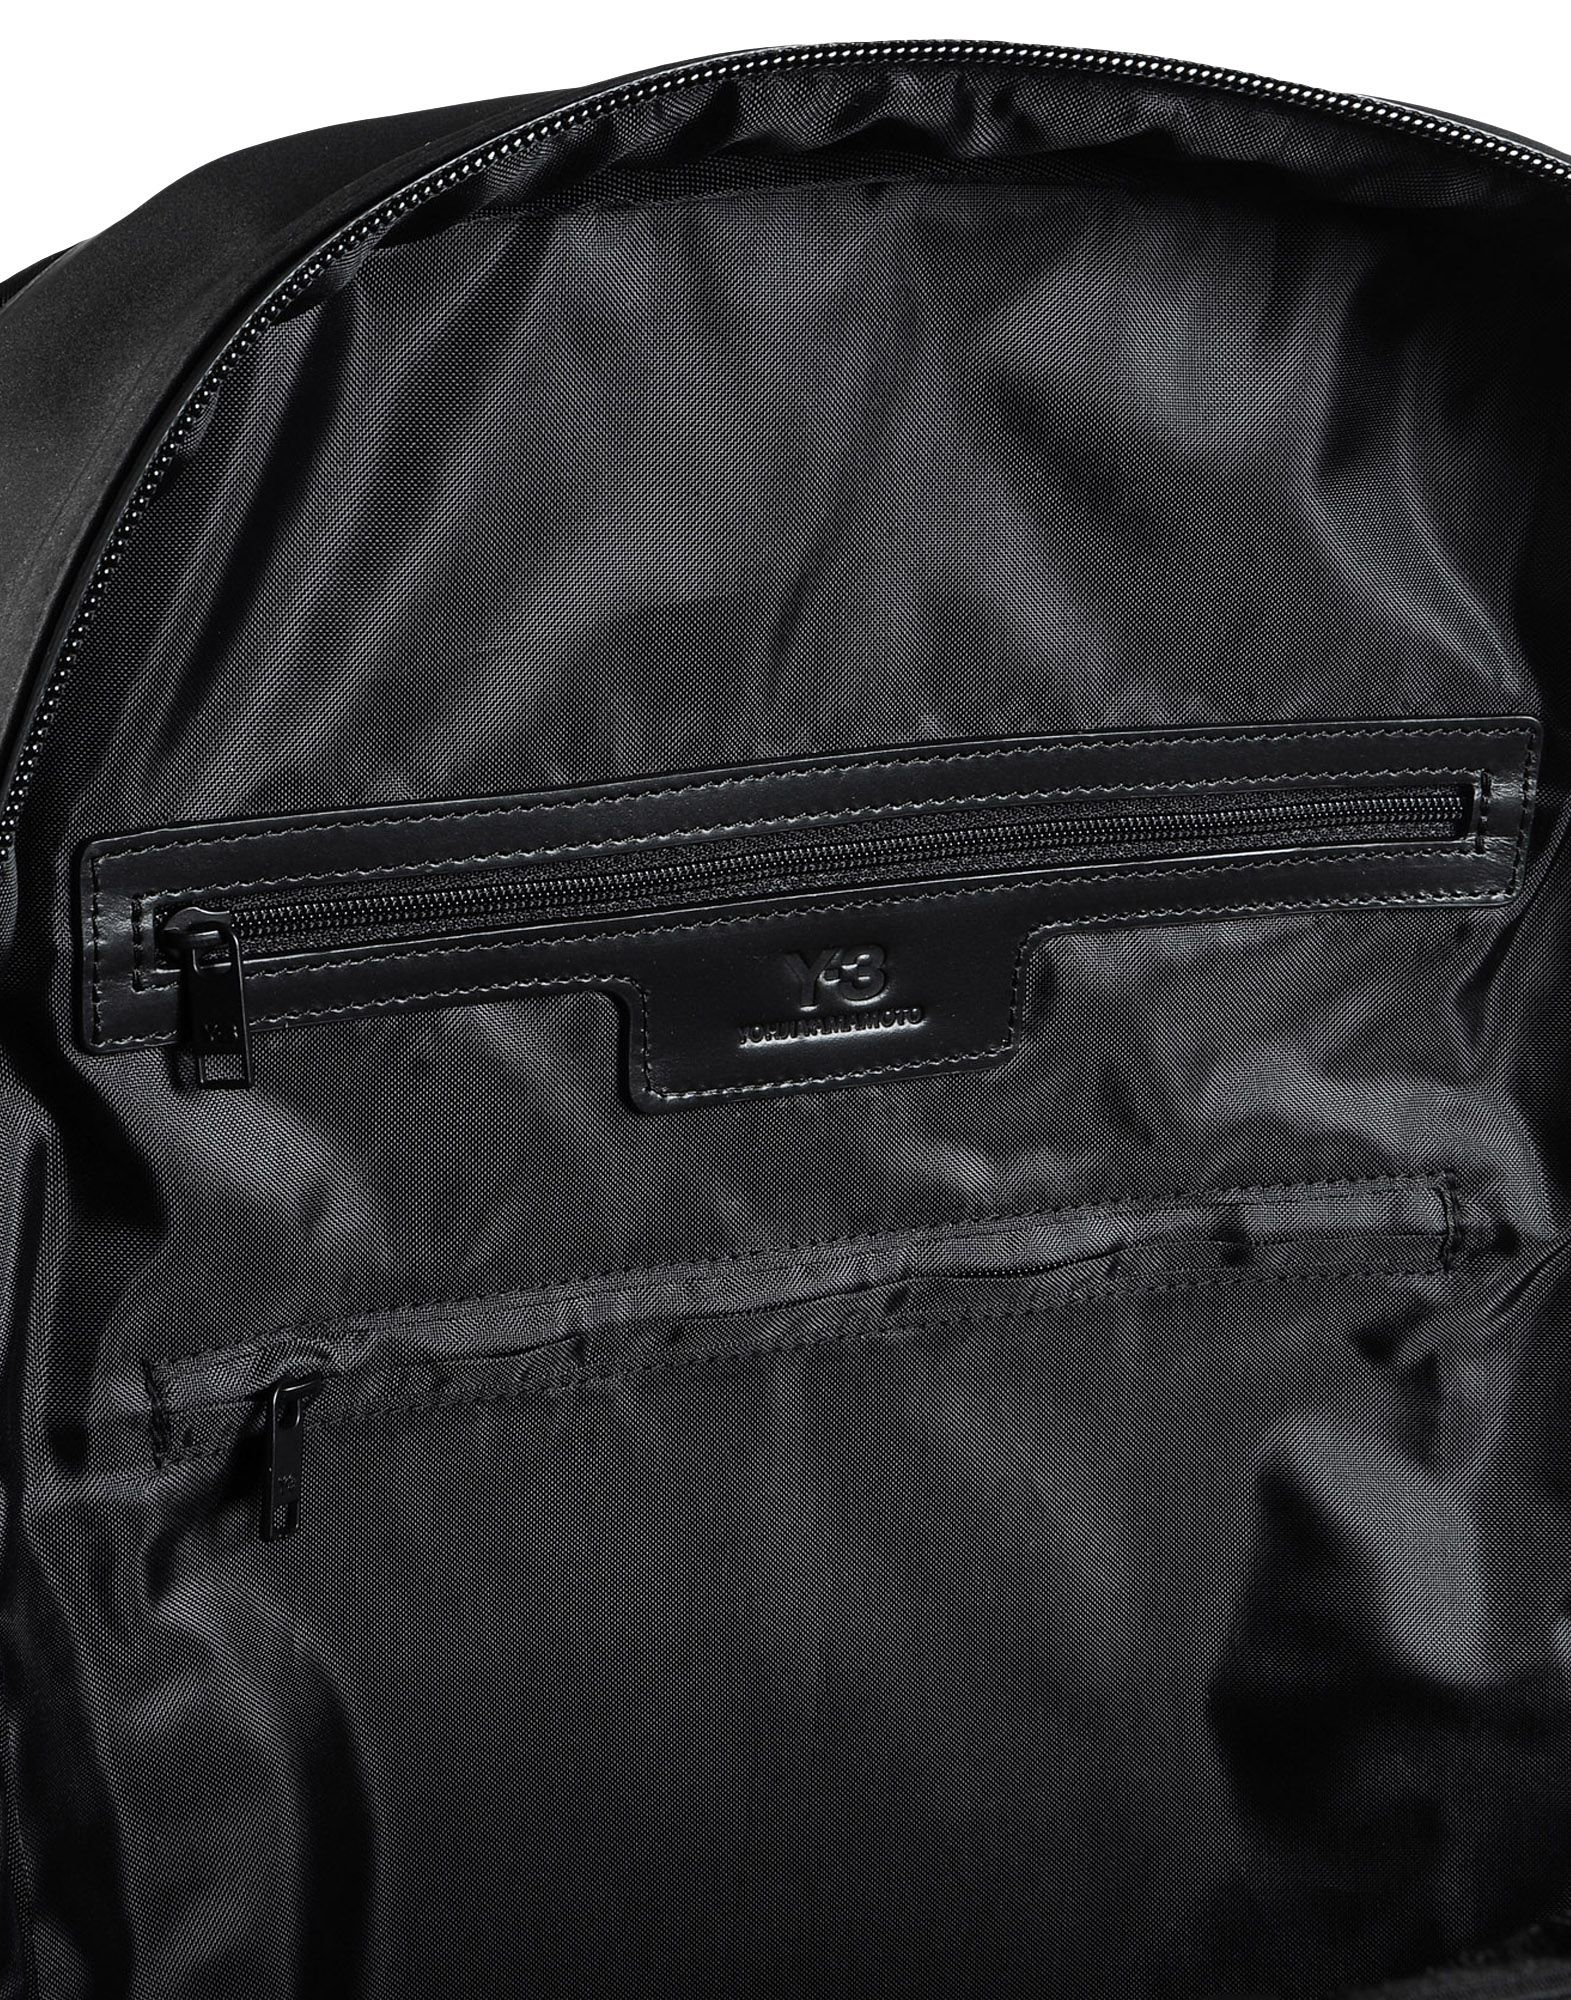 Y-3 ULTRATECH BACKPACK BAGS unisex Y-3 adidas